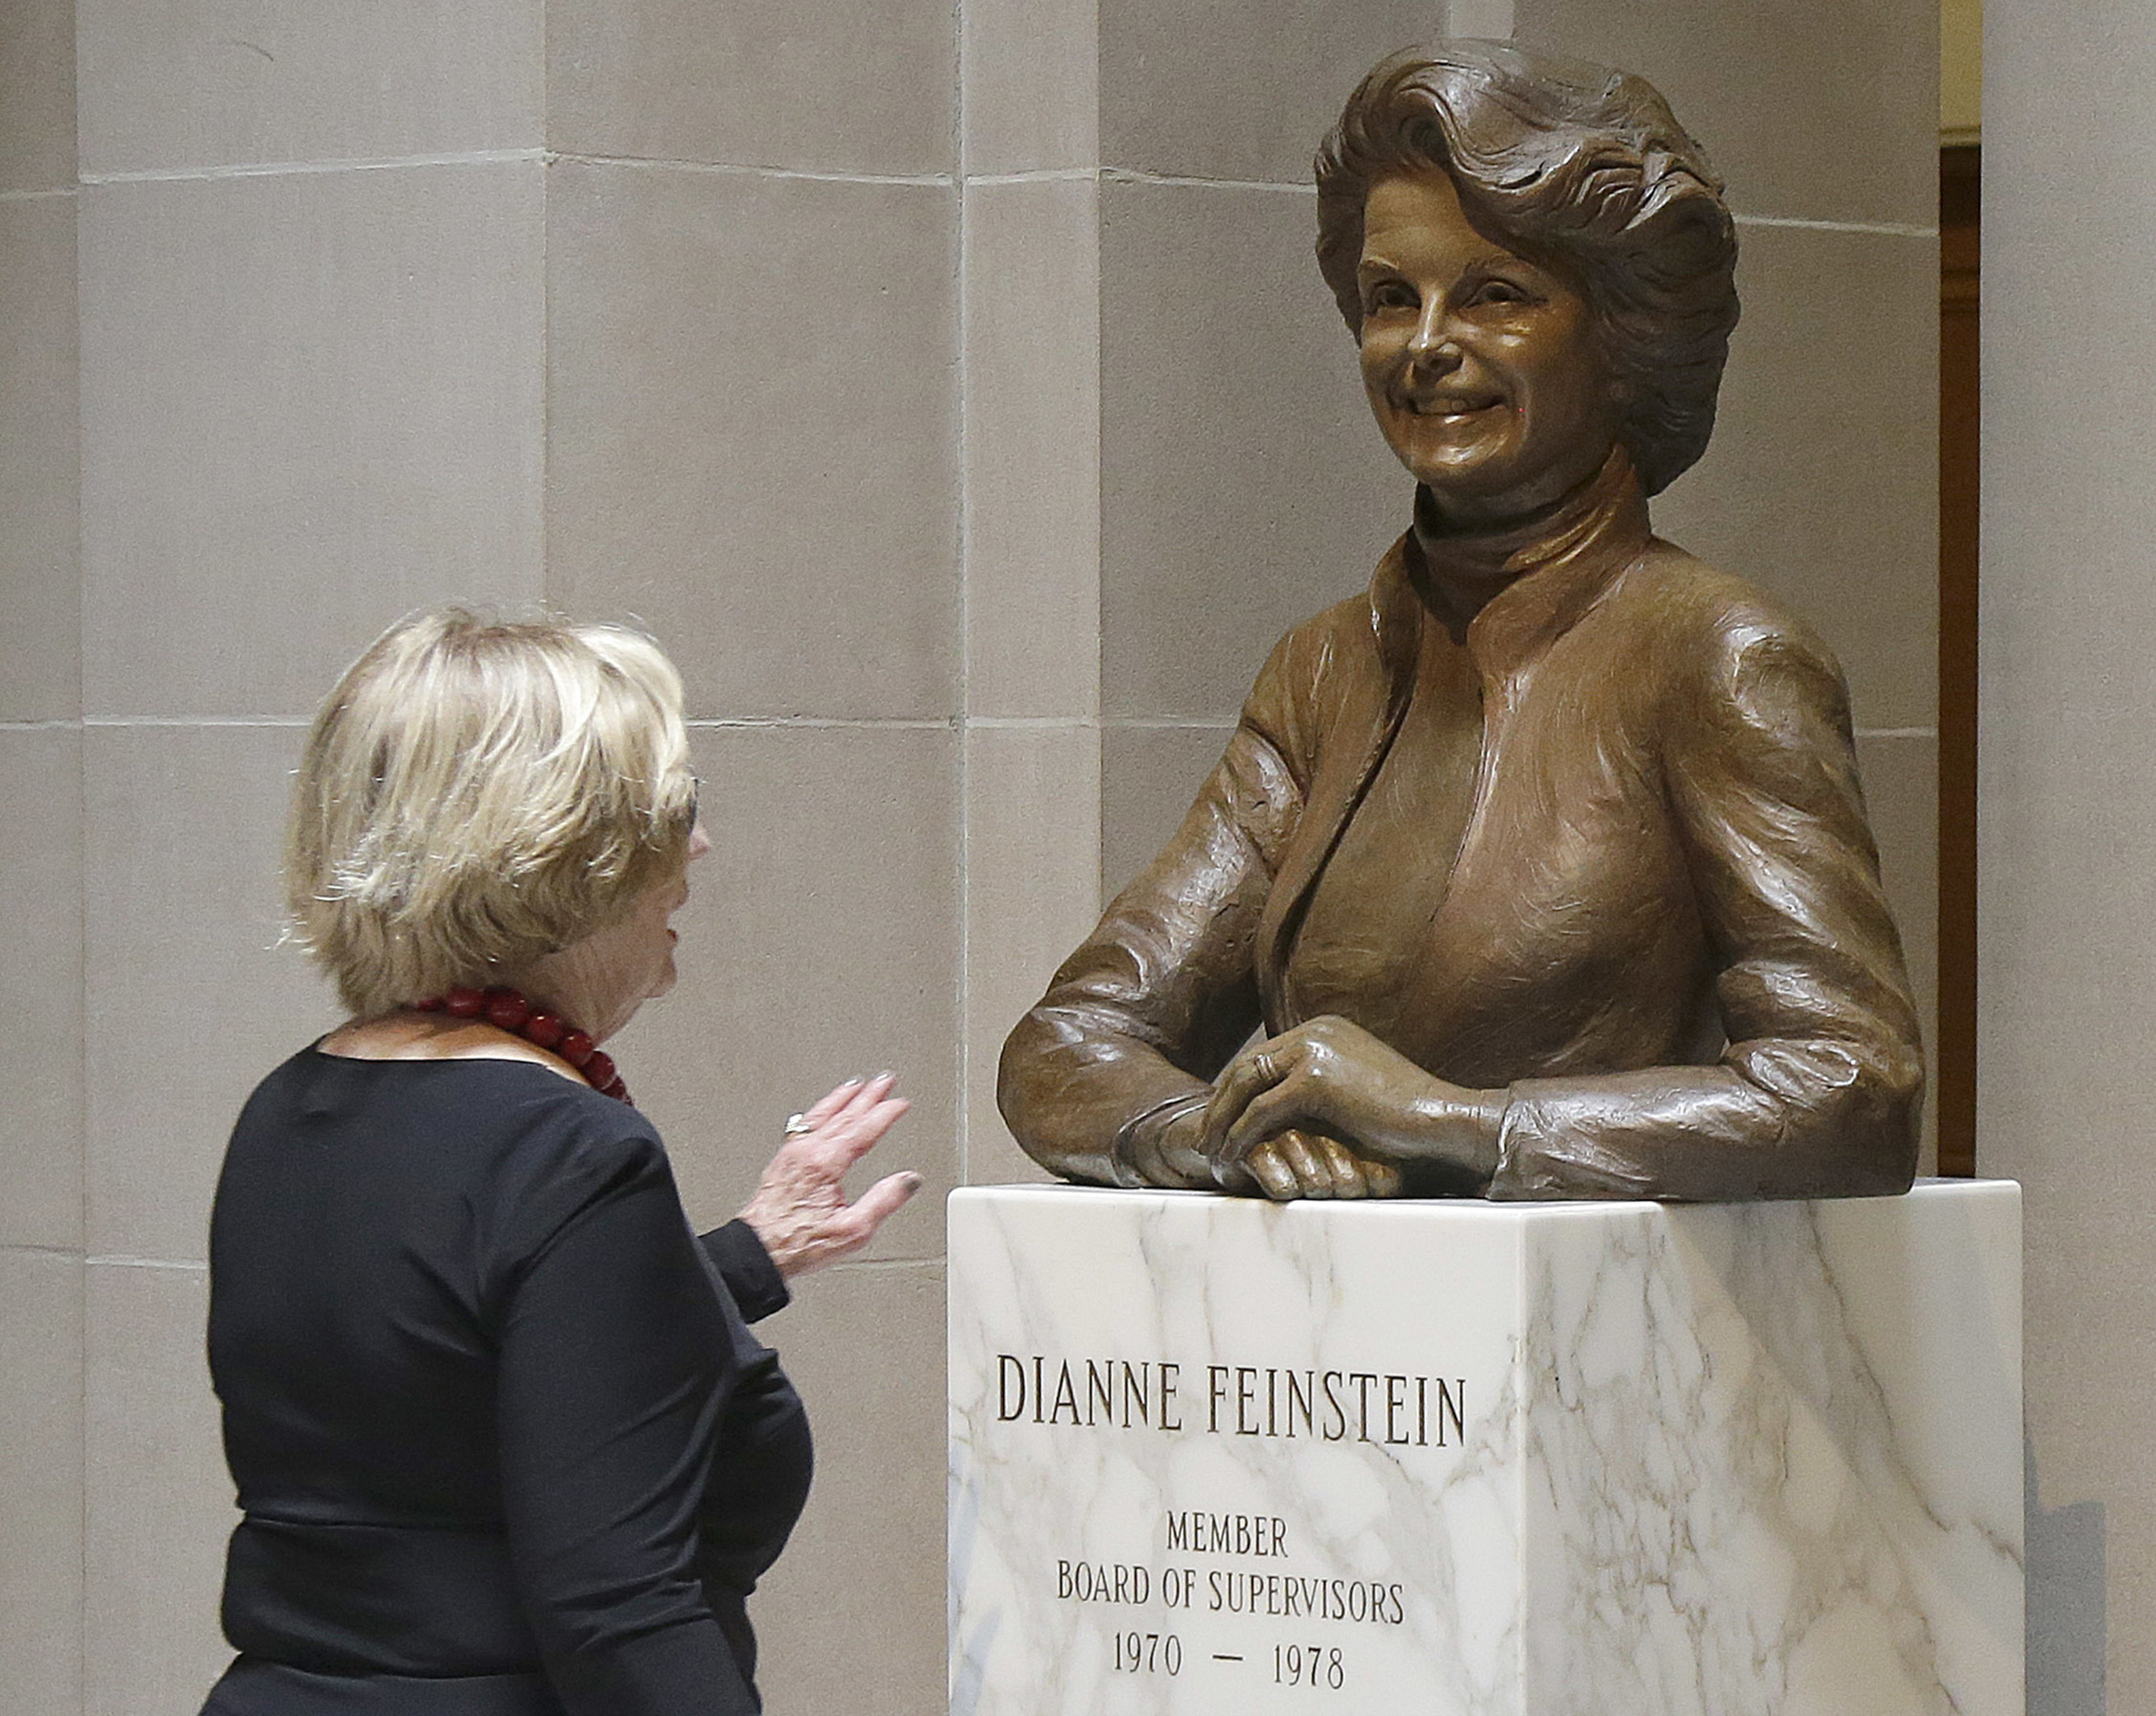 A woman walks toward the statue of Dianne Feinstein at City Hall in San Francisco, on In this June 26, 2017.